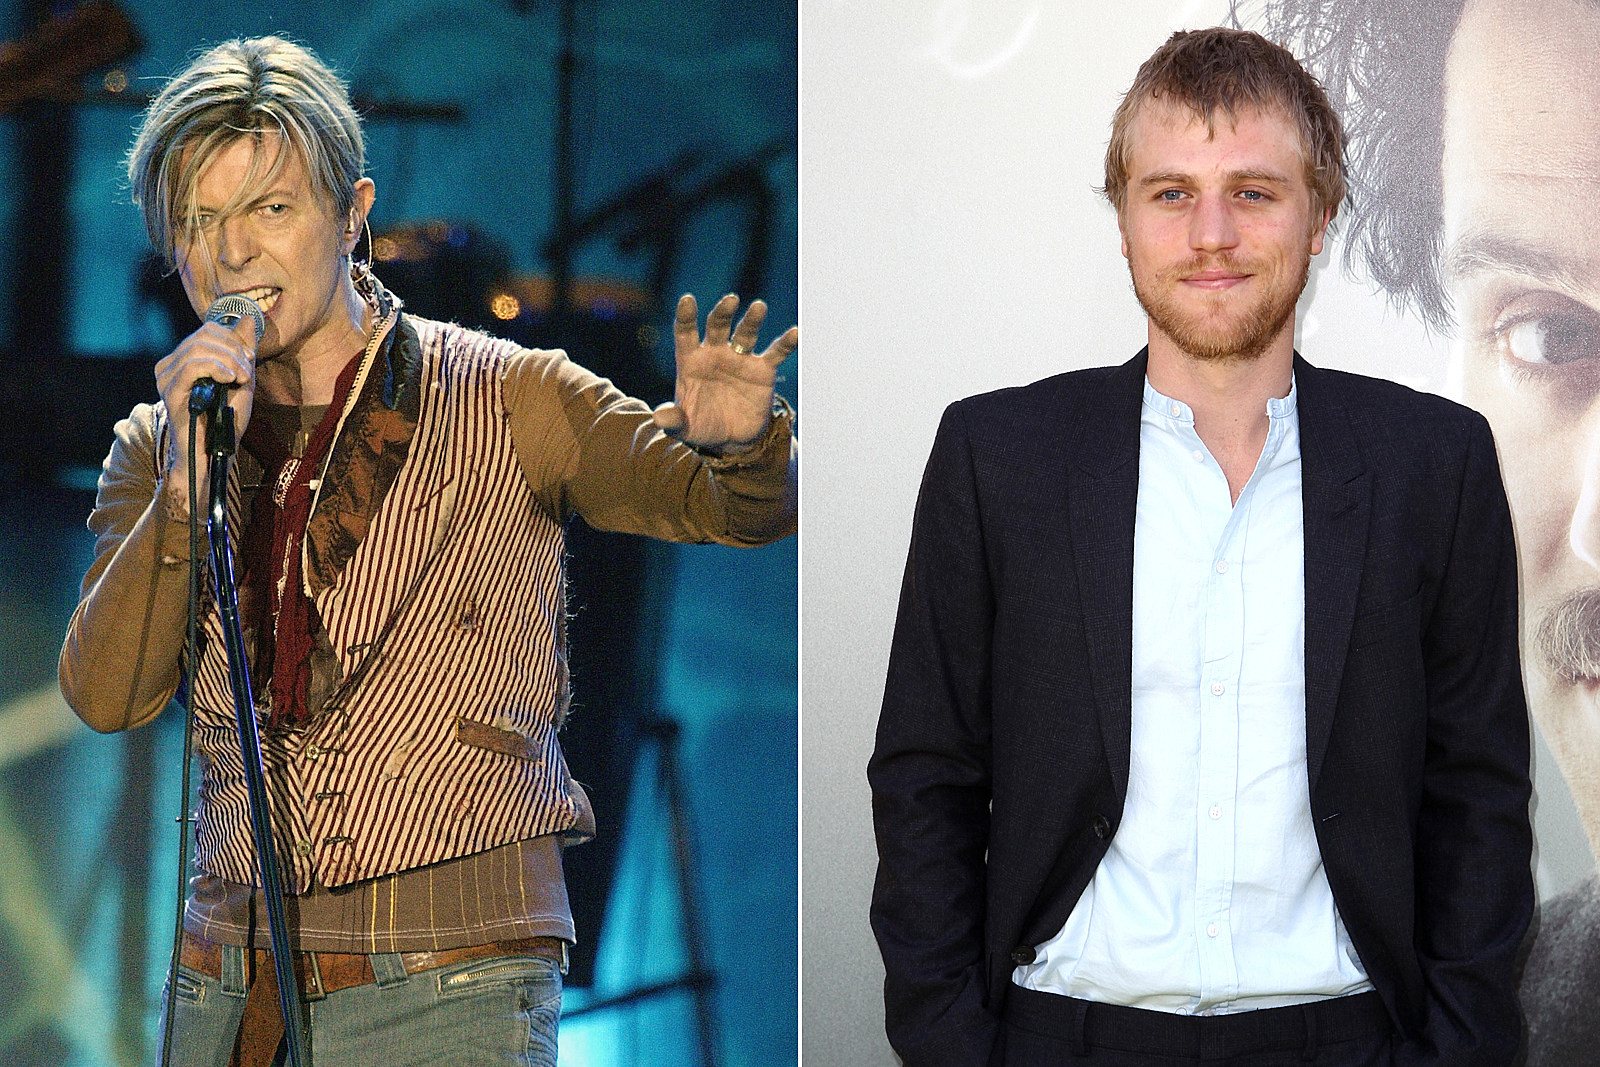 Get Your First Look at Johnny Flynn as David Bowie in 'Stardust'